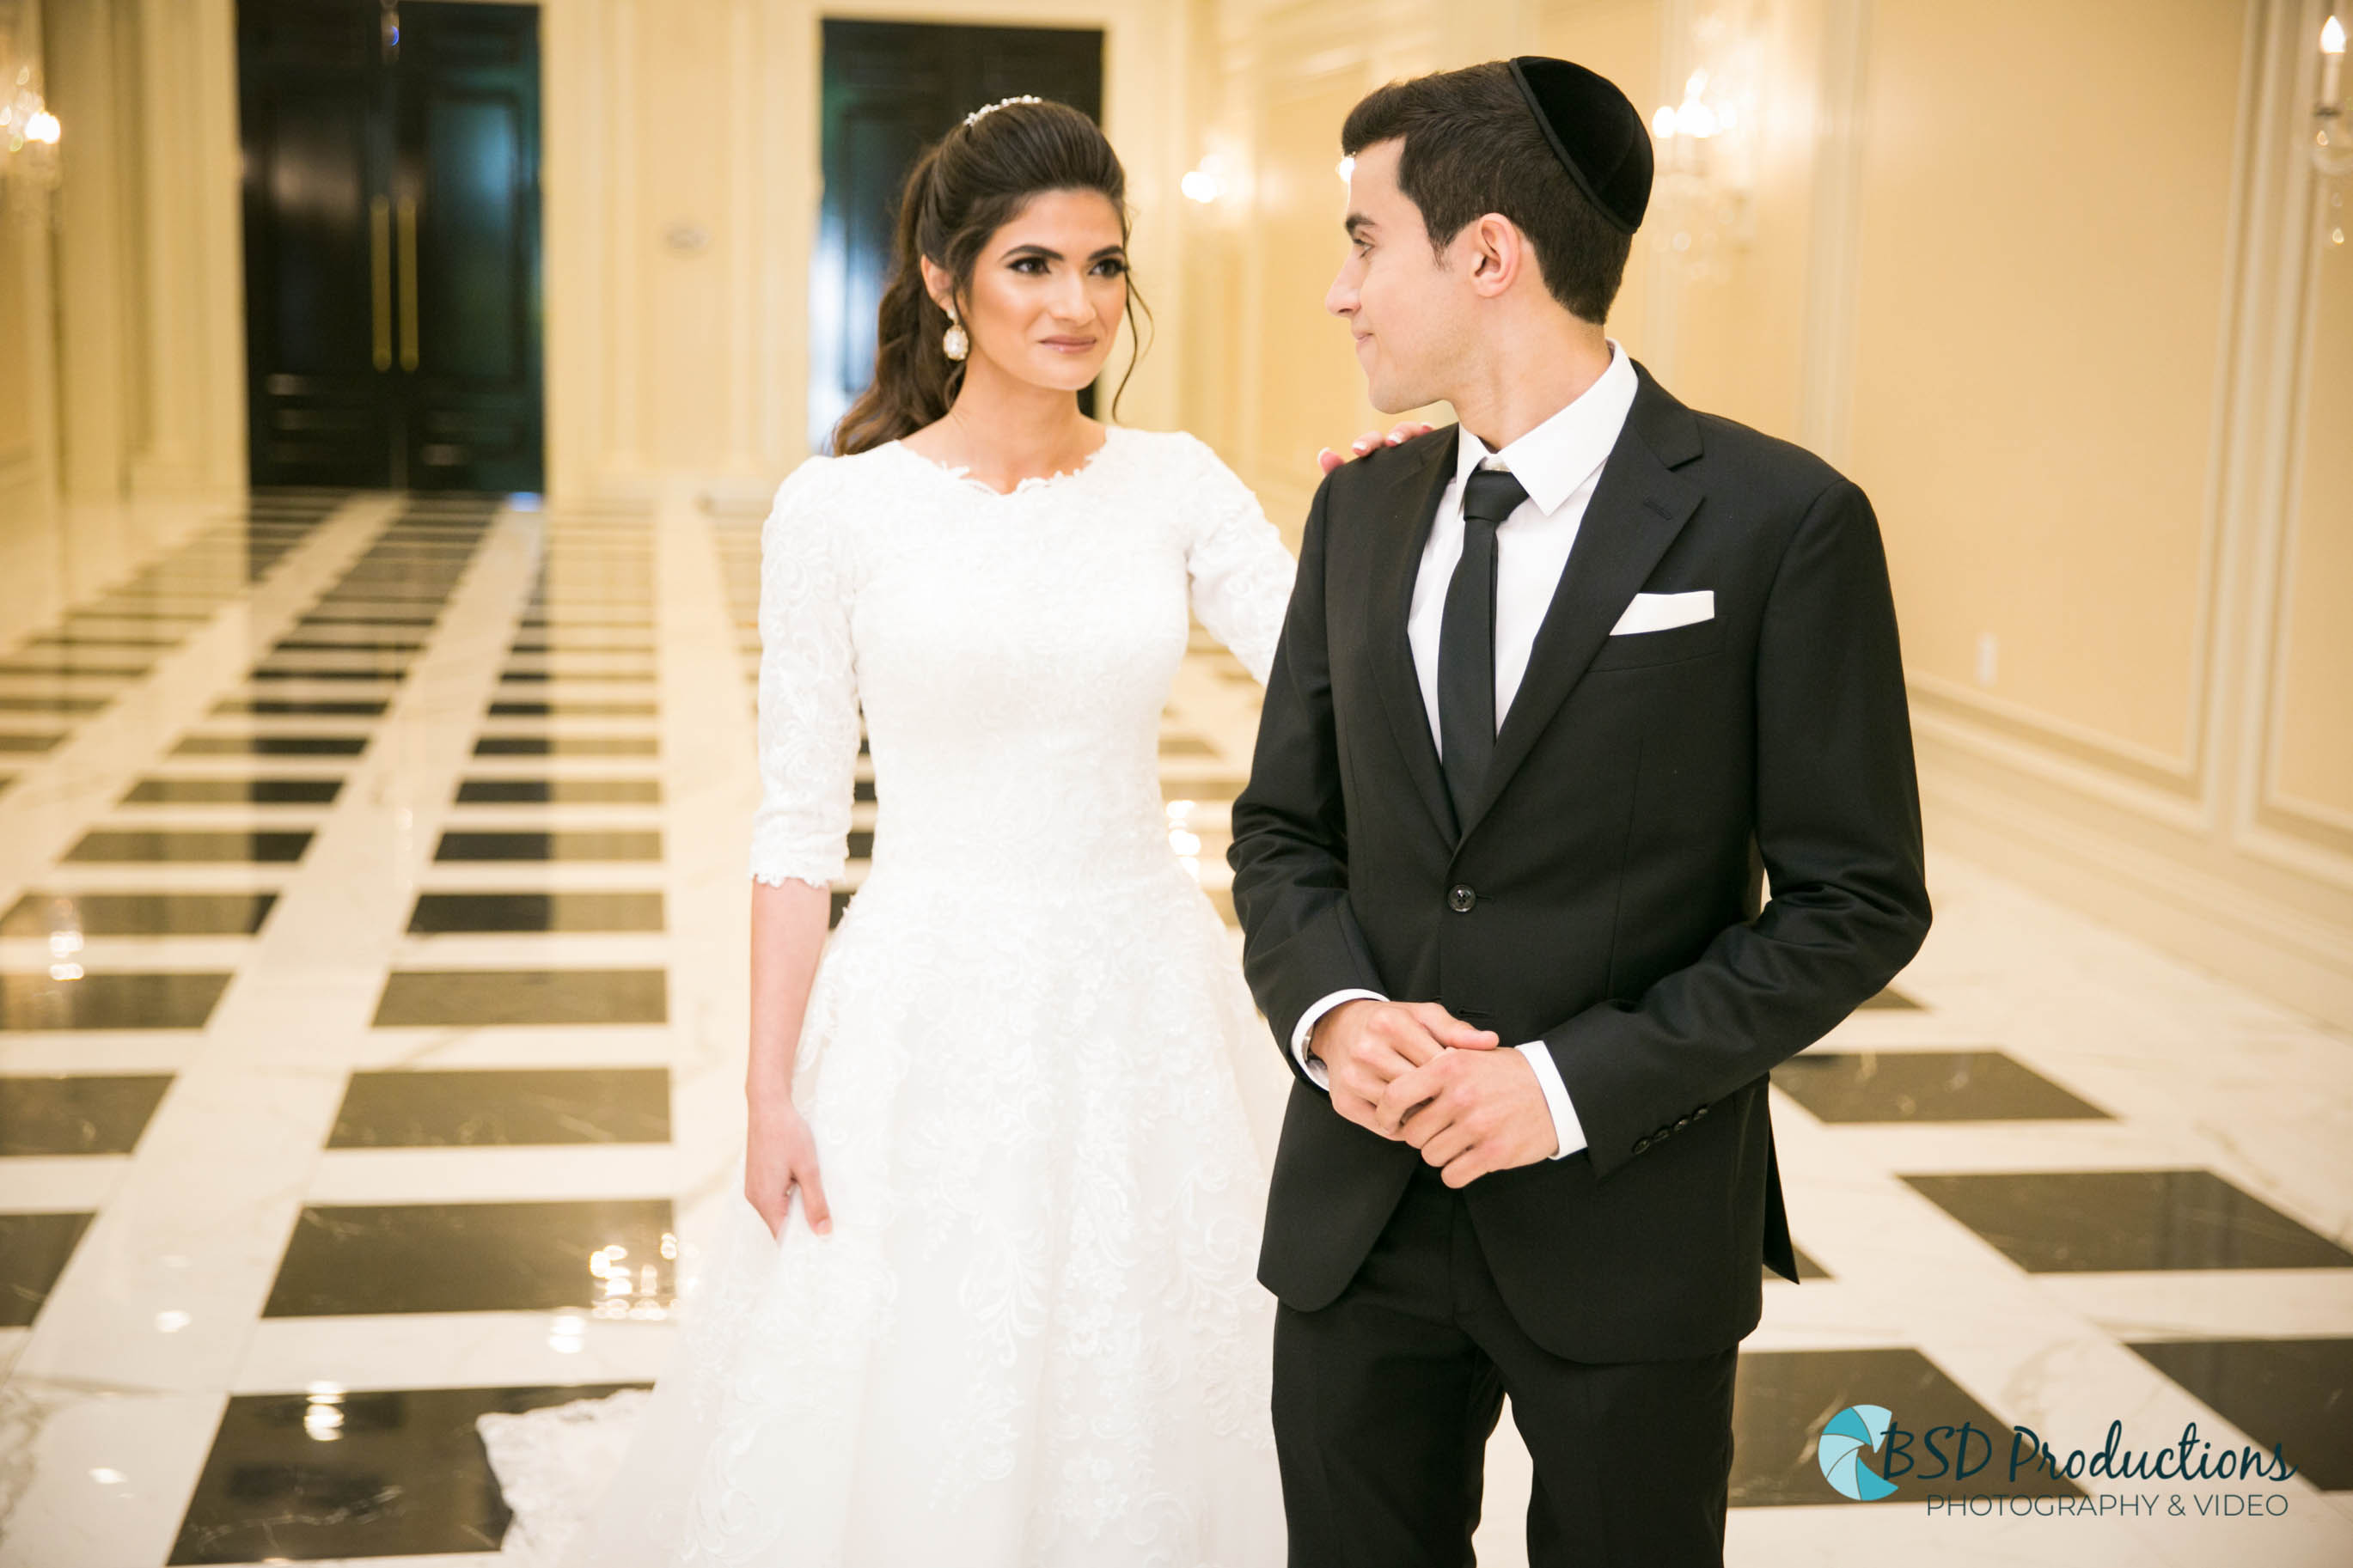 UH5A4578 Wedding – BSD Productions Photography